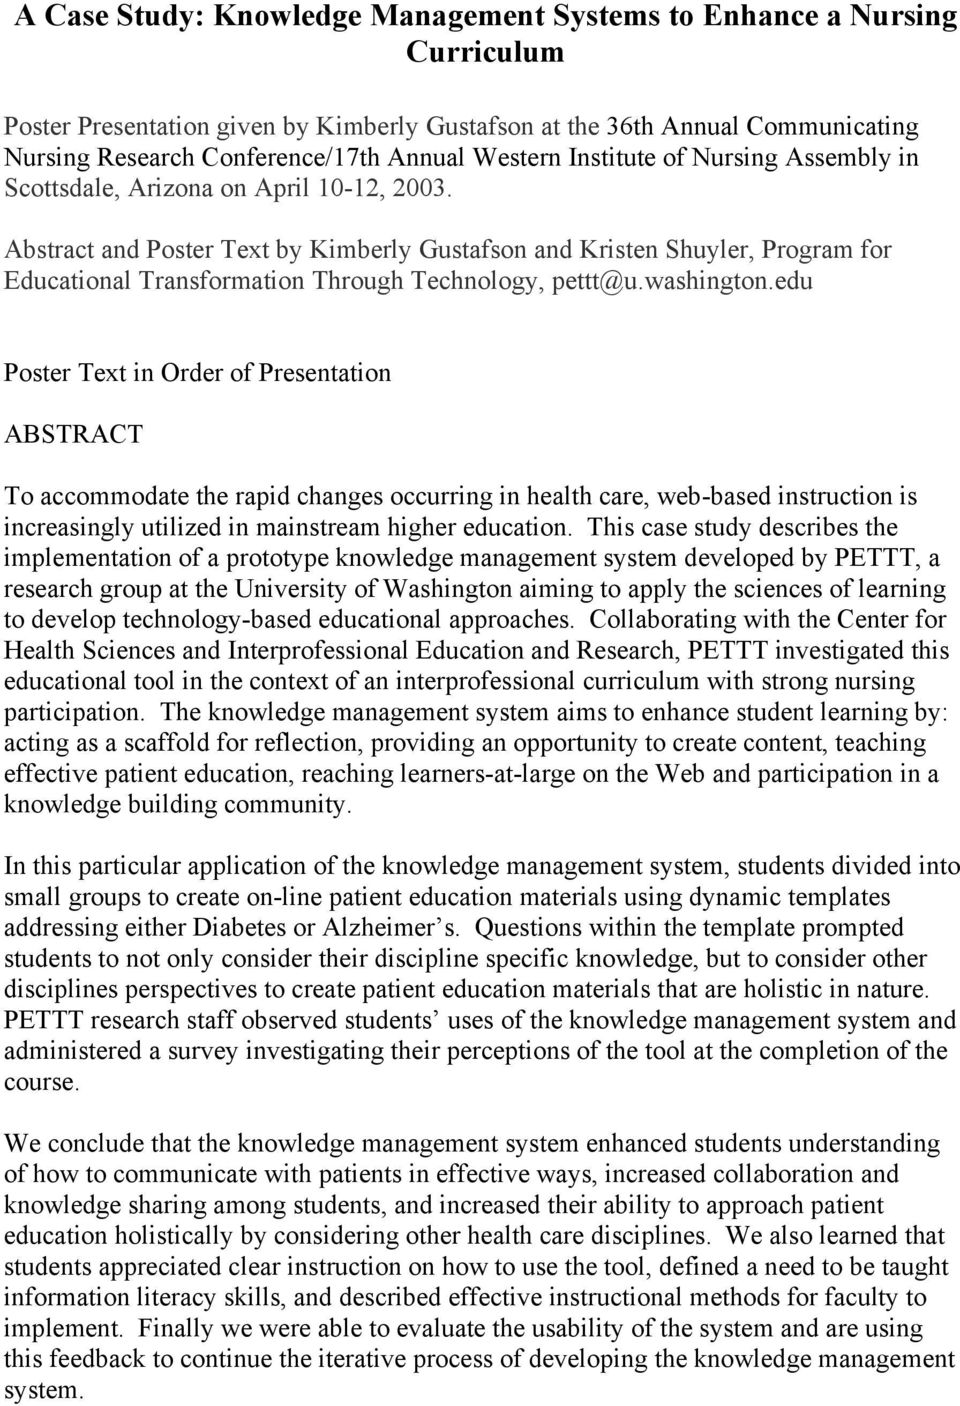 Abstract and Poster Text by Kimberly Gustafson and Kristen Shuyler, Program for Educational Transformation Through Technology, pettt@u.washington.